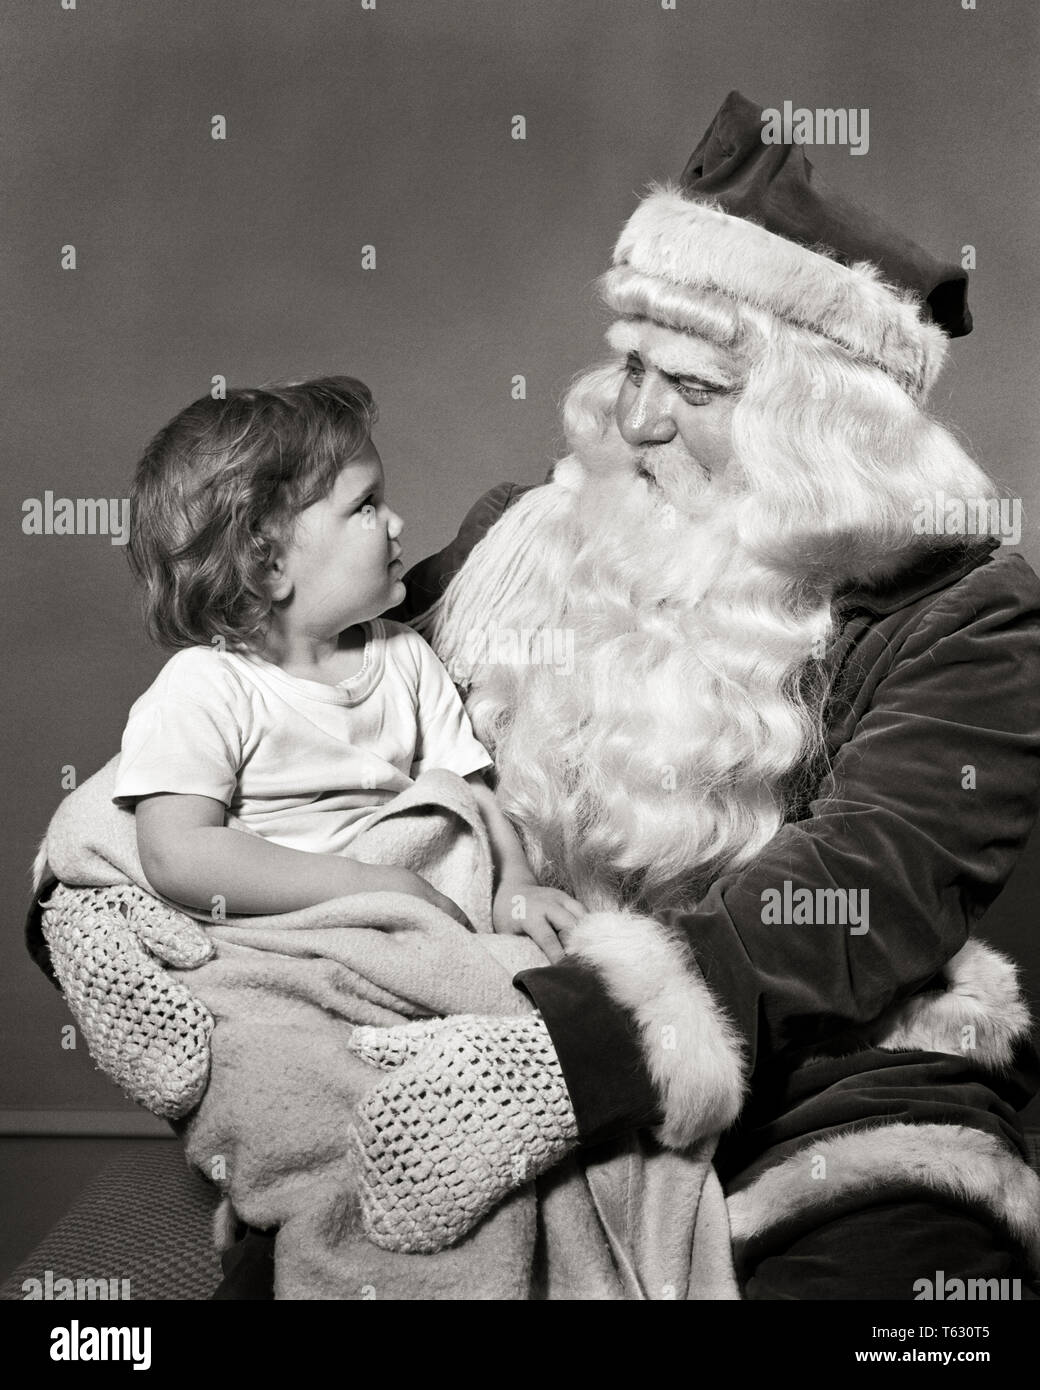 1940s 1950s LITTLE GIRL SITTING ON SANTA CLAUS LAP SMILING AT EACH OTHER  - x4919 HAR001 HARS FACIAL COMMUNICATION PLEASED JOY LIFESTYLE FEMALES STUDIO SHOT CLAUS COPY SPACE HALF-LENGTH PERSONS MALES SYMBOLS SENIOR MAN SAINT EXPRESSIONS B&W LAP CHEERFUL EXCITEMENT SANTA CLAUS FACIAL HAIR HOLIDAYS OCCUPATIONS SMILES DECEMBER CONCEPT CONCEPTUAL JOYFUL KRIS KRINGLE ST. NICK STYLISH ELDERLY MAN SYMBOLIC CONCEPTS FATHER CHRISTMAS JOLLY JUVENILES NICHOLAS BLACK AND WHITE CAUCASIAN ETHNICITY HAR001 OLD FASHIONED REPRESENTATION UNCERTAIN - Stock Image